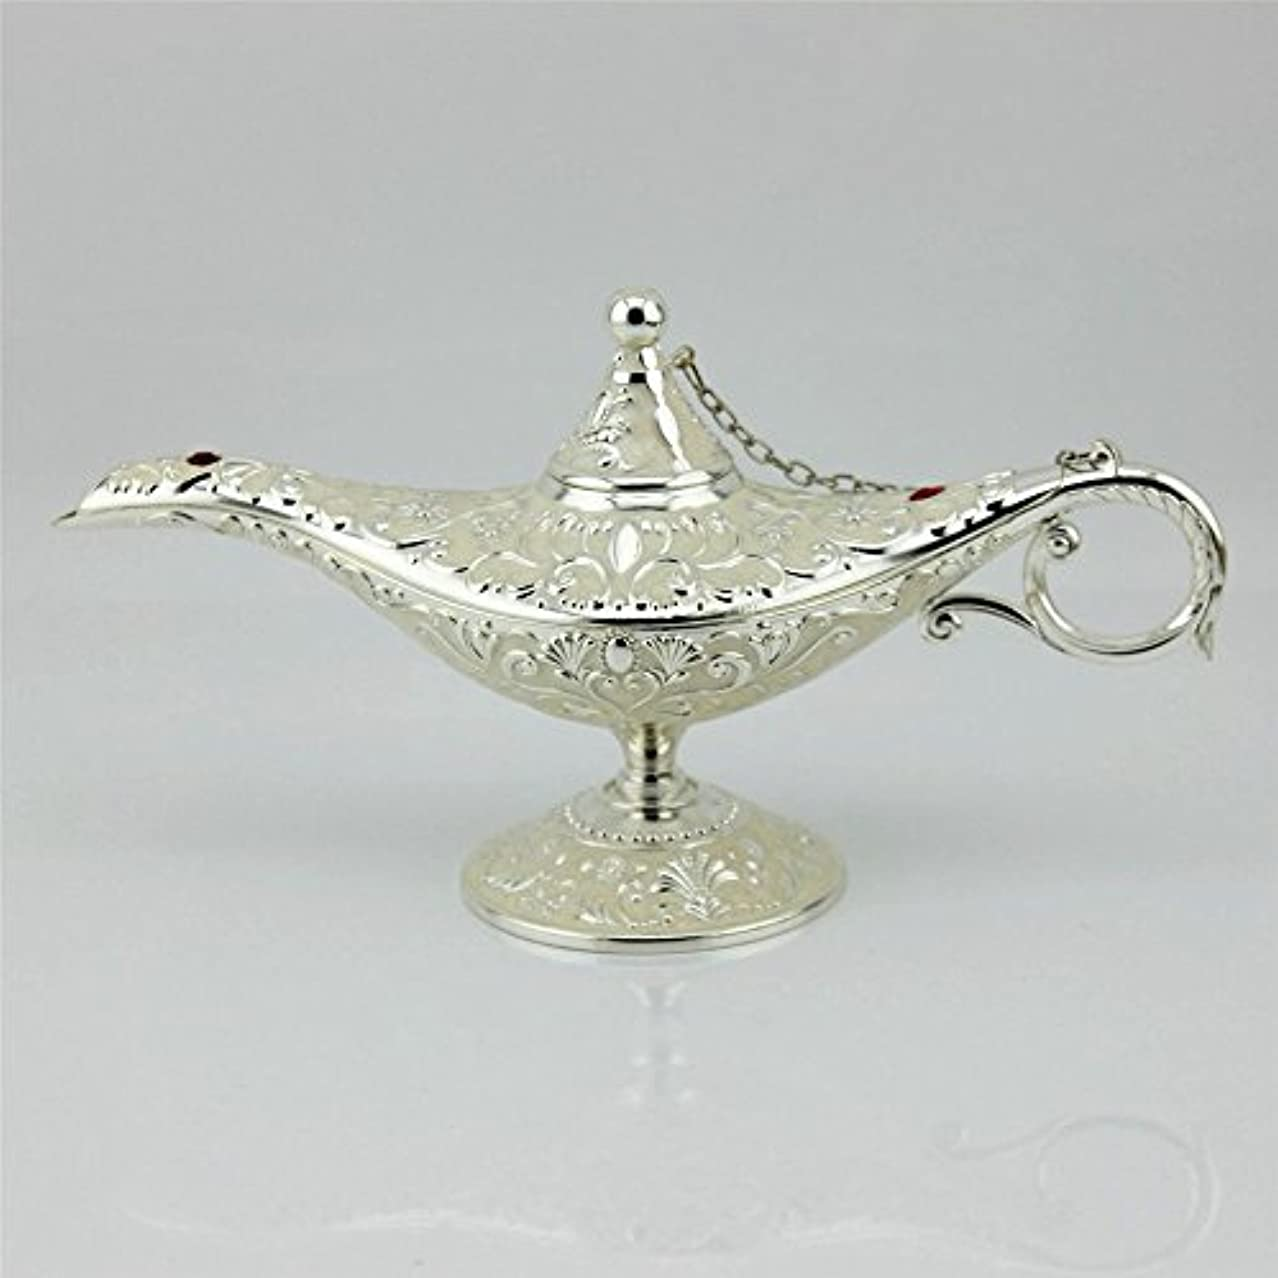 矛盾する敬商業のSY CraftsエナメルメタルAladdin Genie Lamps Incense Burners凡例Aladdin Magic Lamp